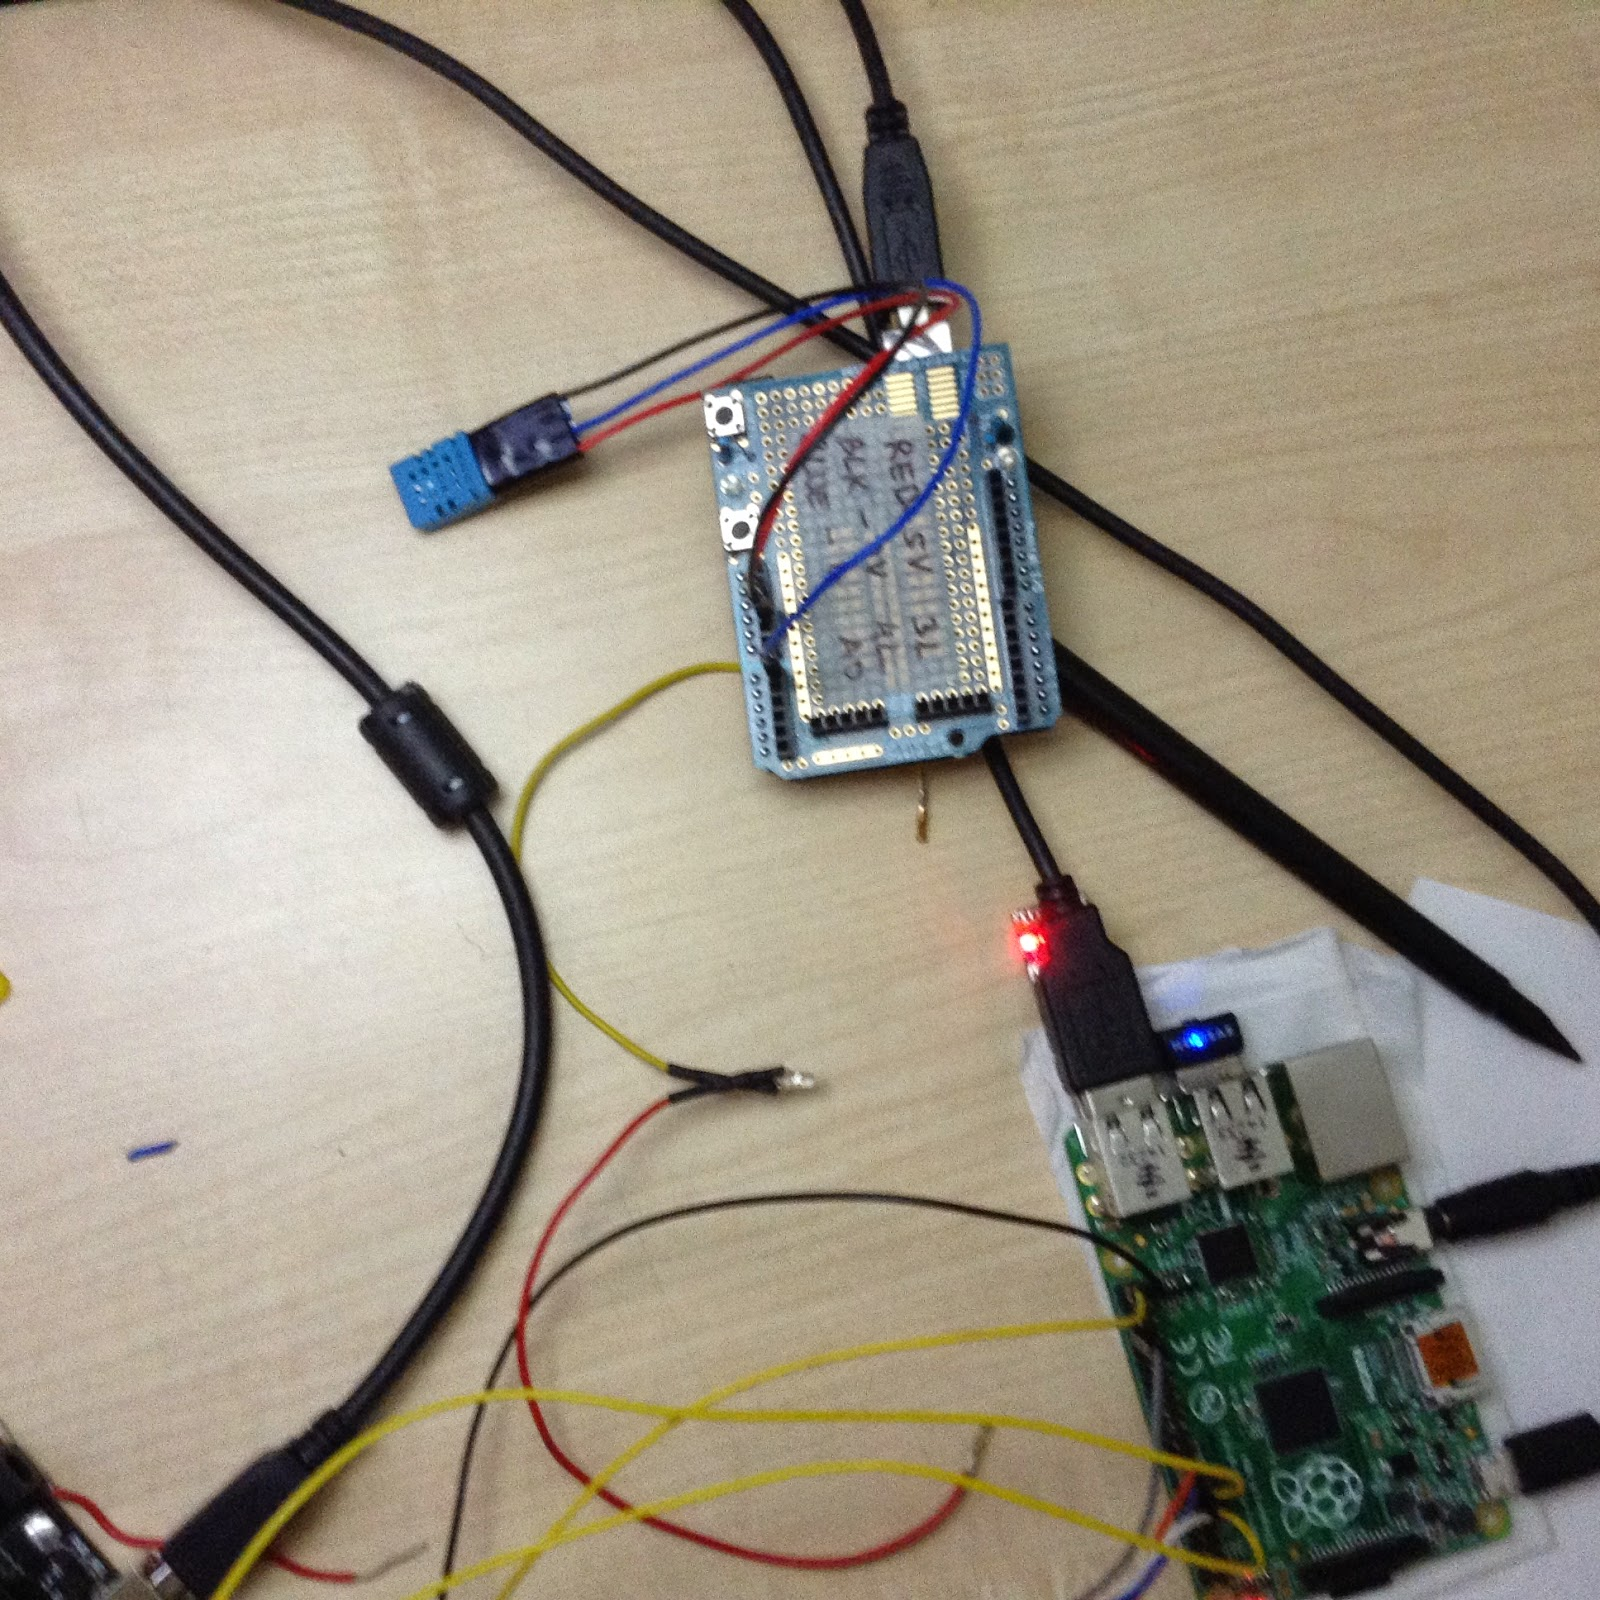 Jarvis Intellihome Iedprojects2015iiitd Reversing A Motor4 See 1 2 3 In 200 Transistor Circuits Using The Second Arduino Mcu Uno Along With Raspberry Pi For Sending Temperature And Humidity Data Over Serial